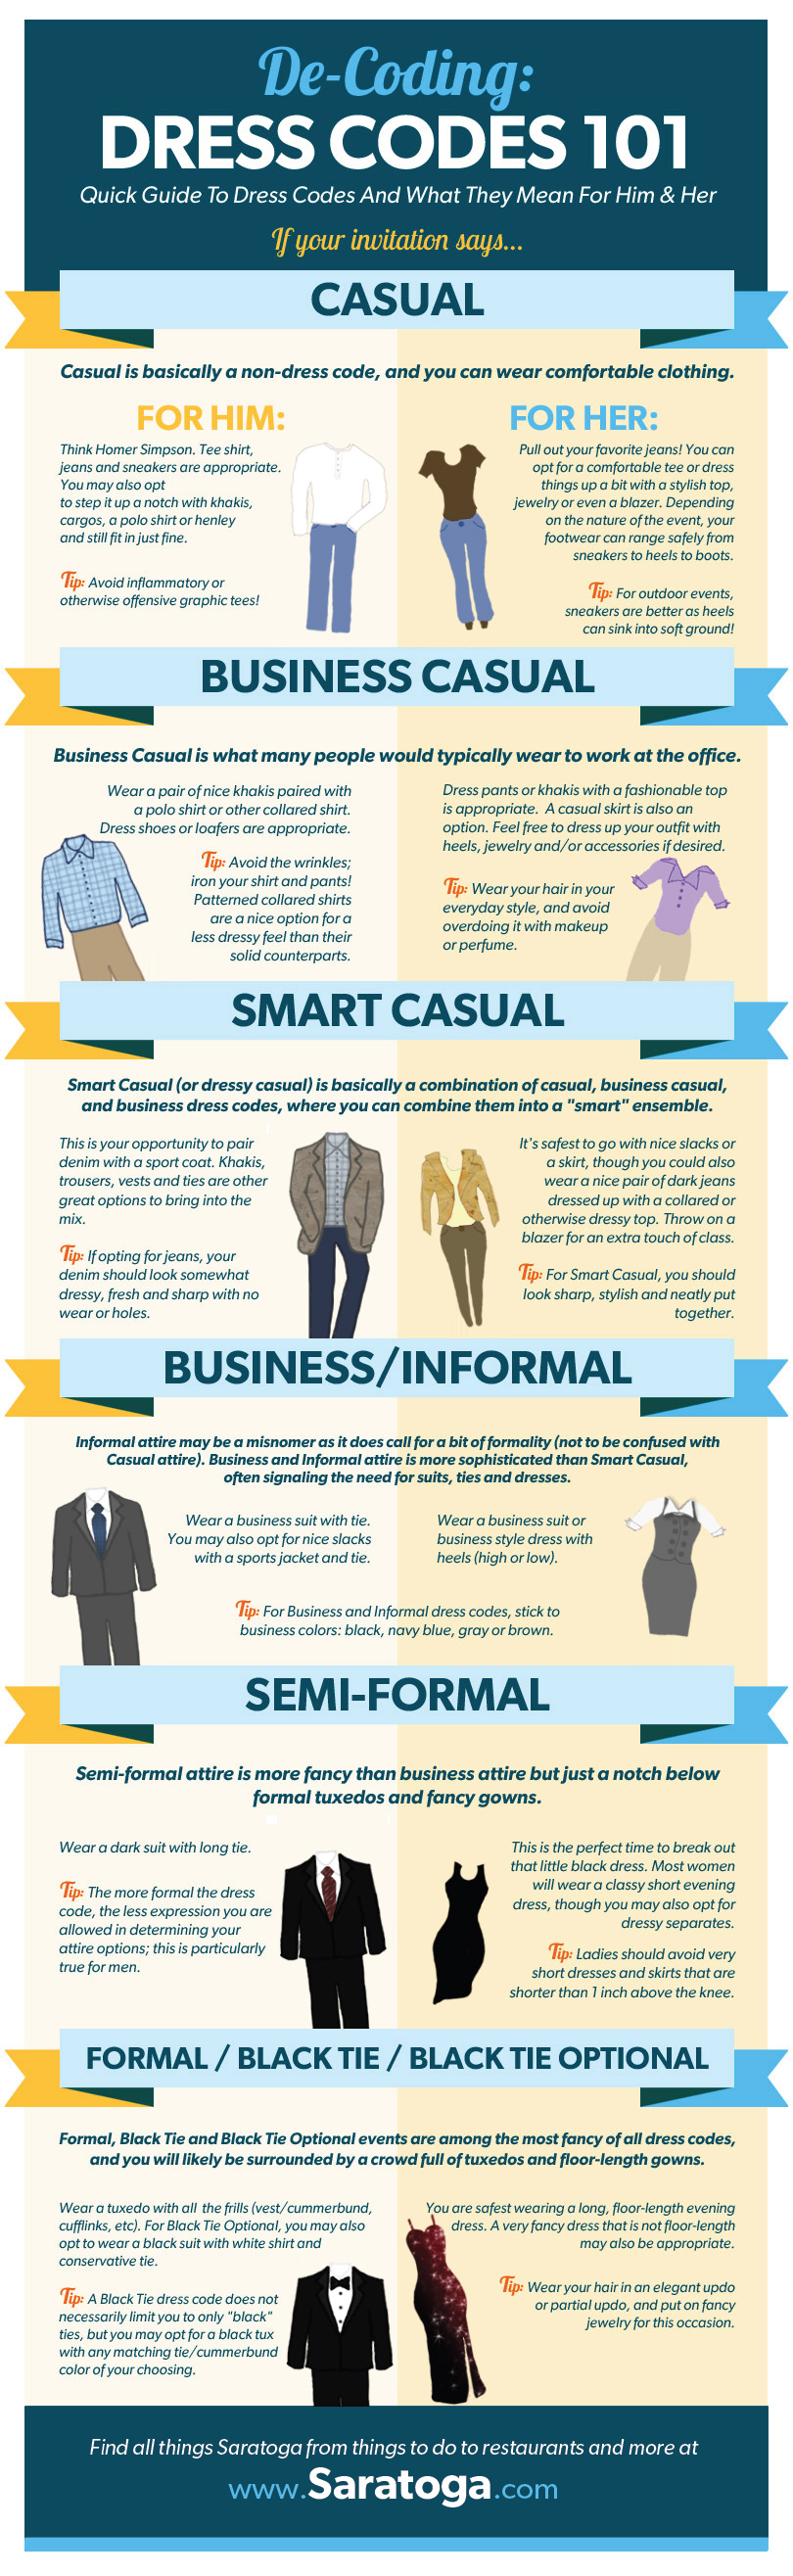 Dress Codes & What They Mean [Infographic] - His & Her Guide To